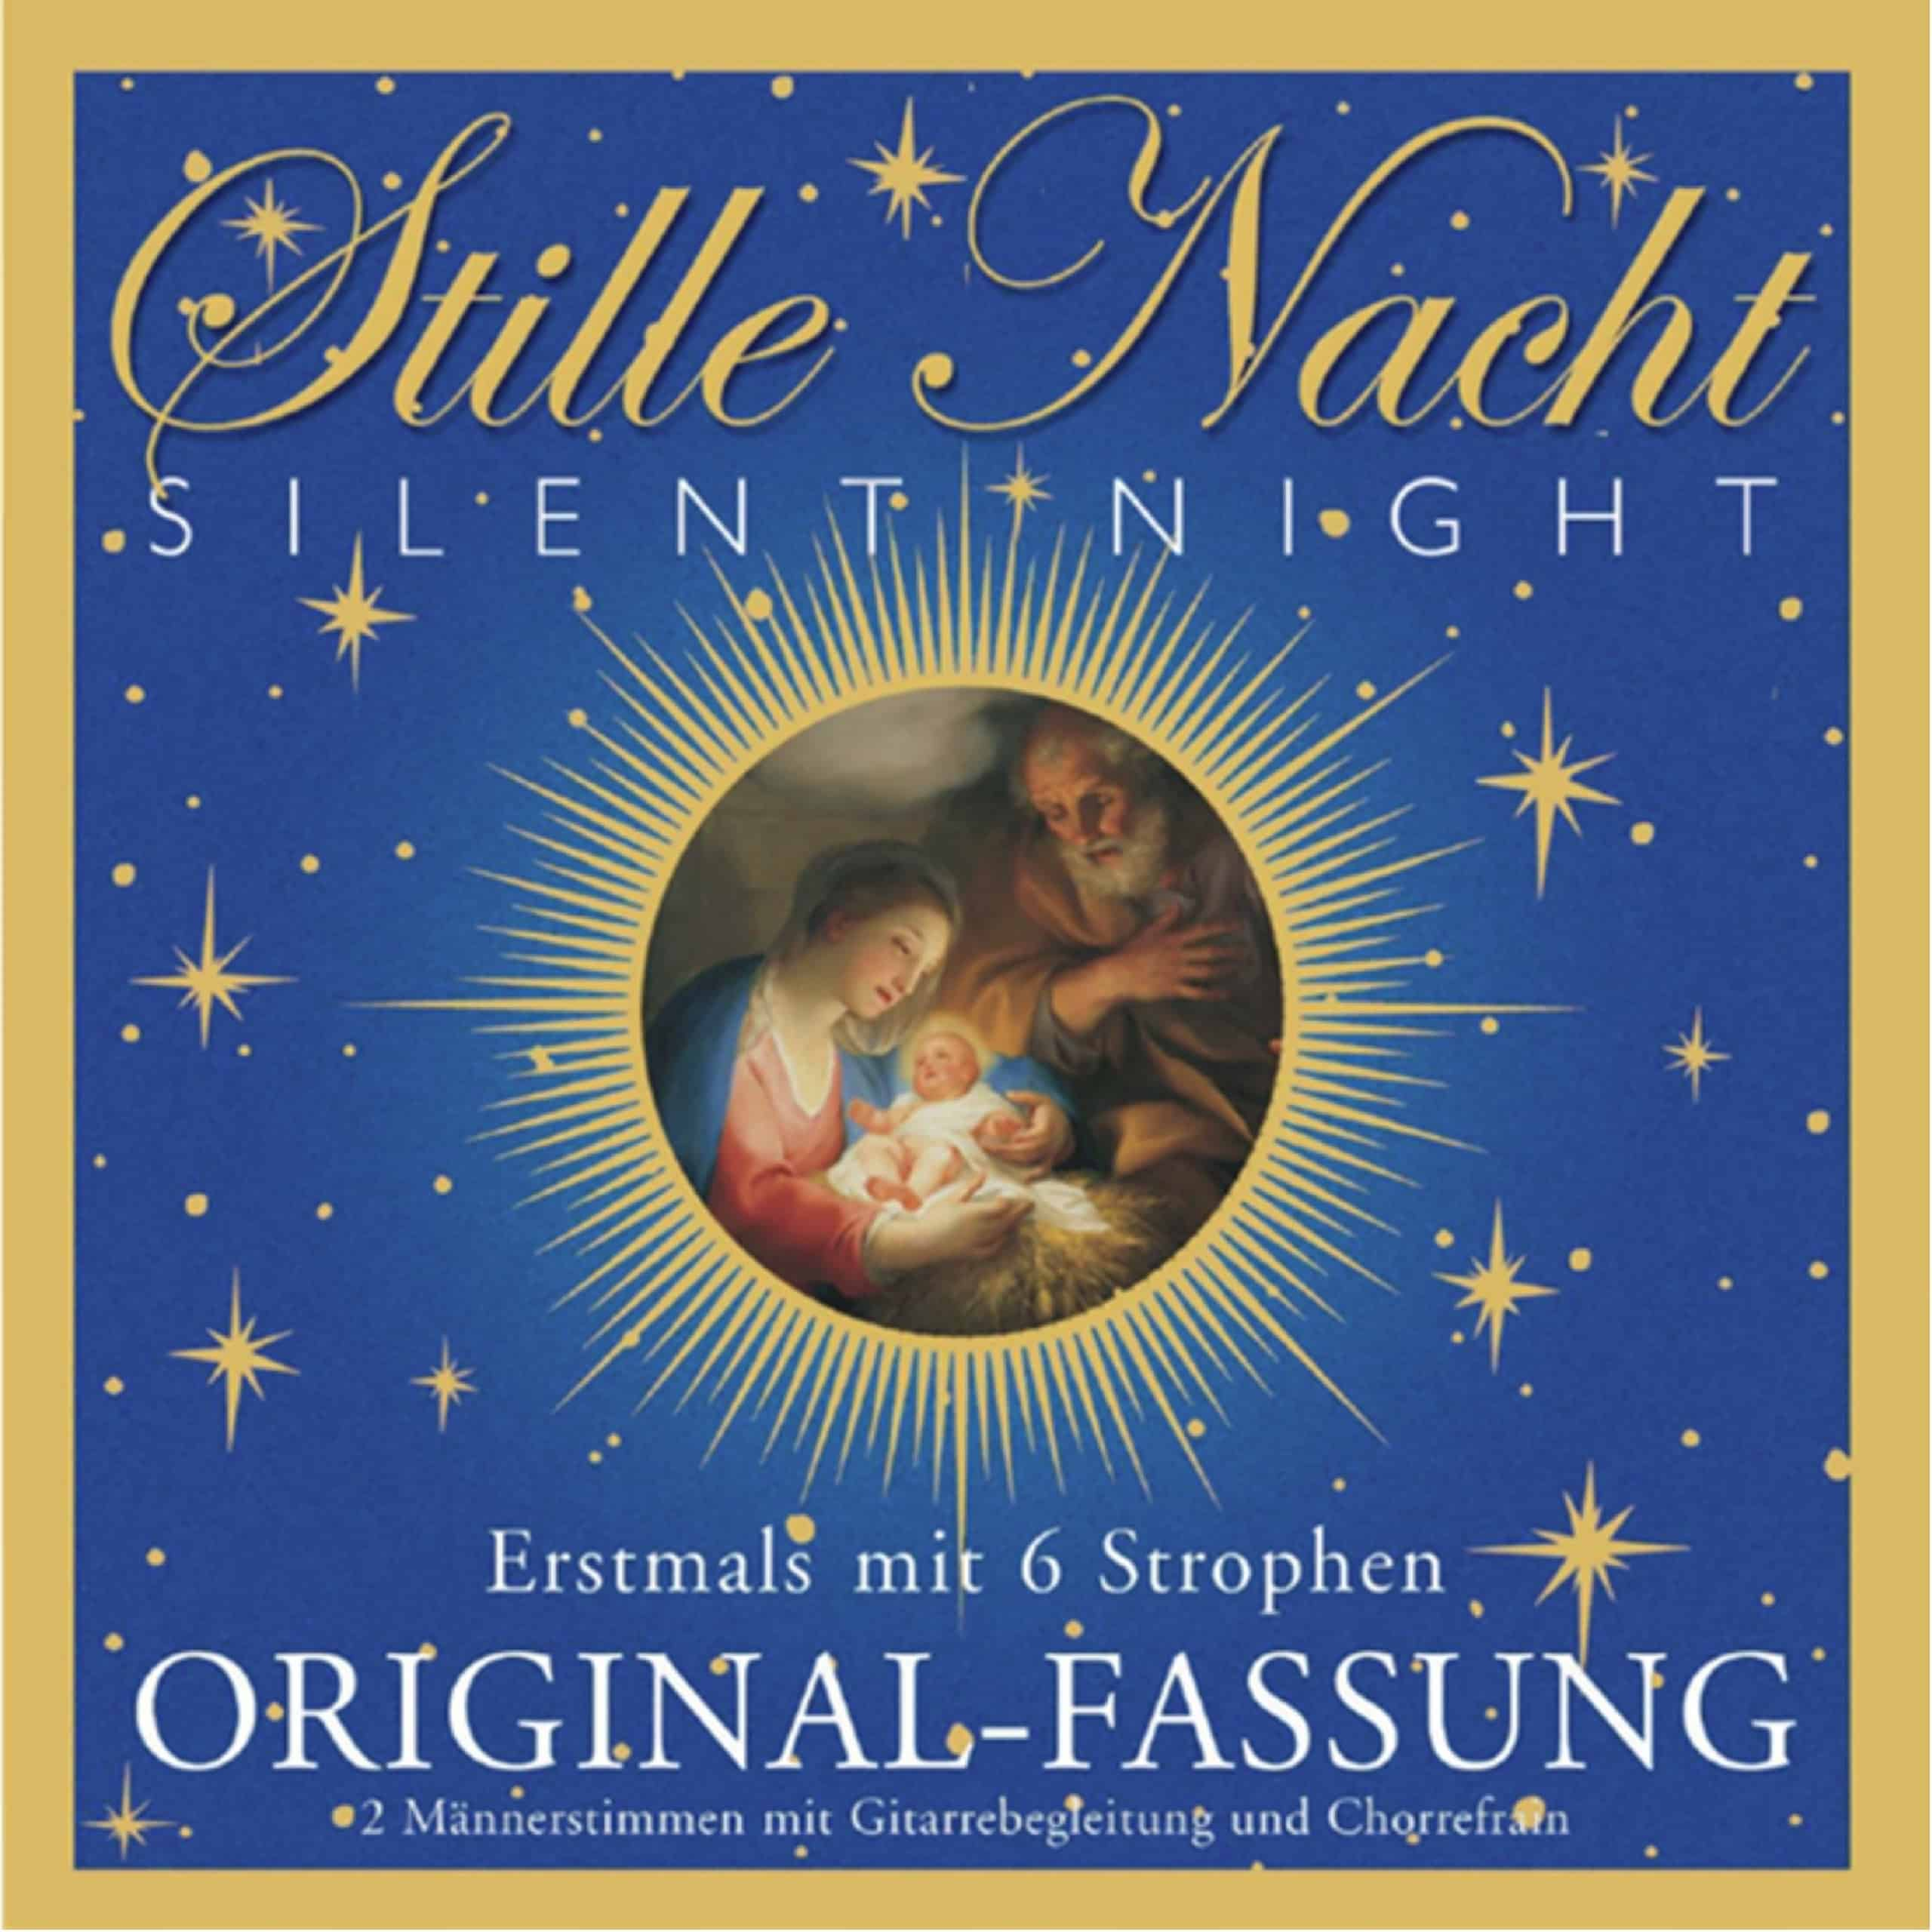 StilleNacht-CD-Cover-Blau